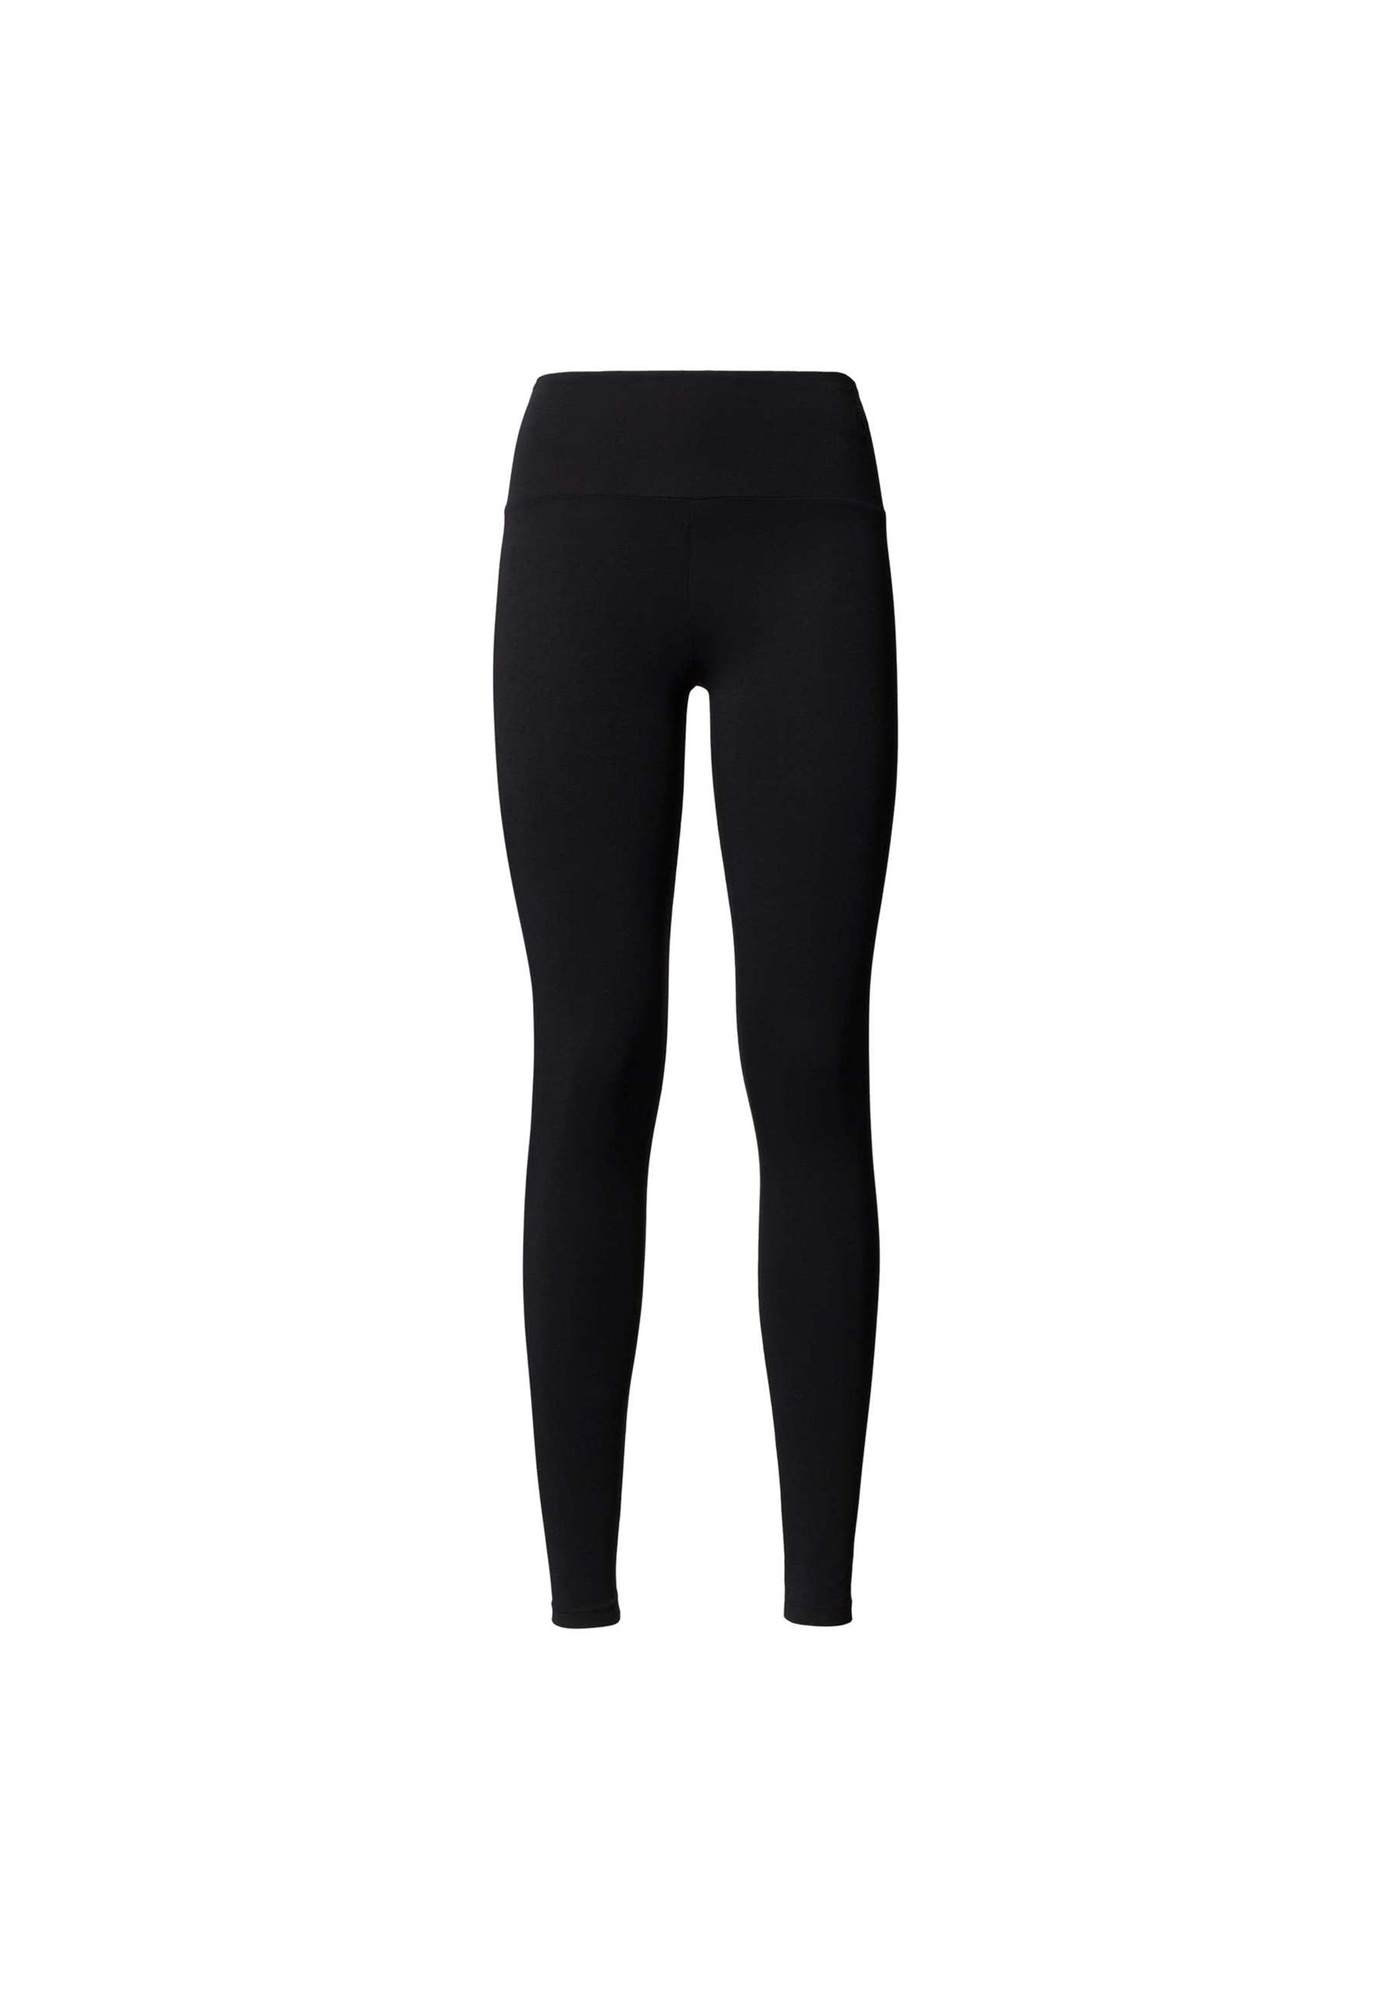 TT26 Leggings Black